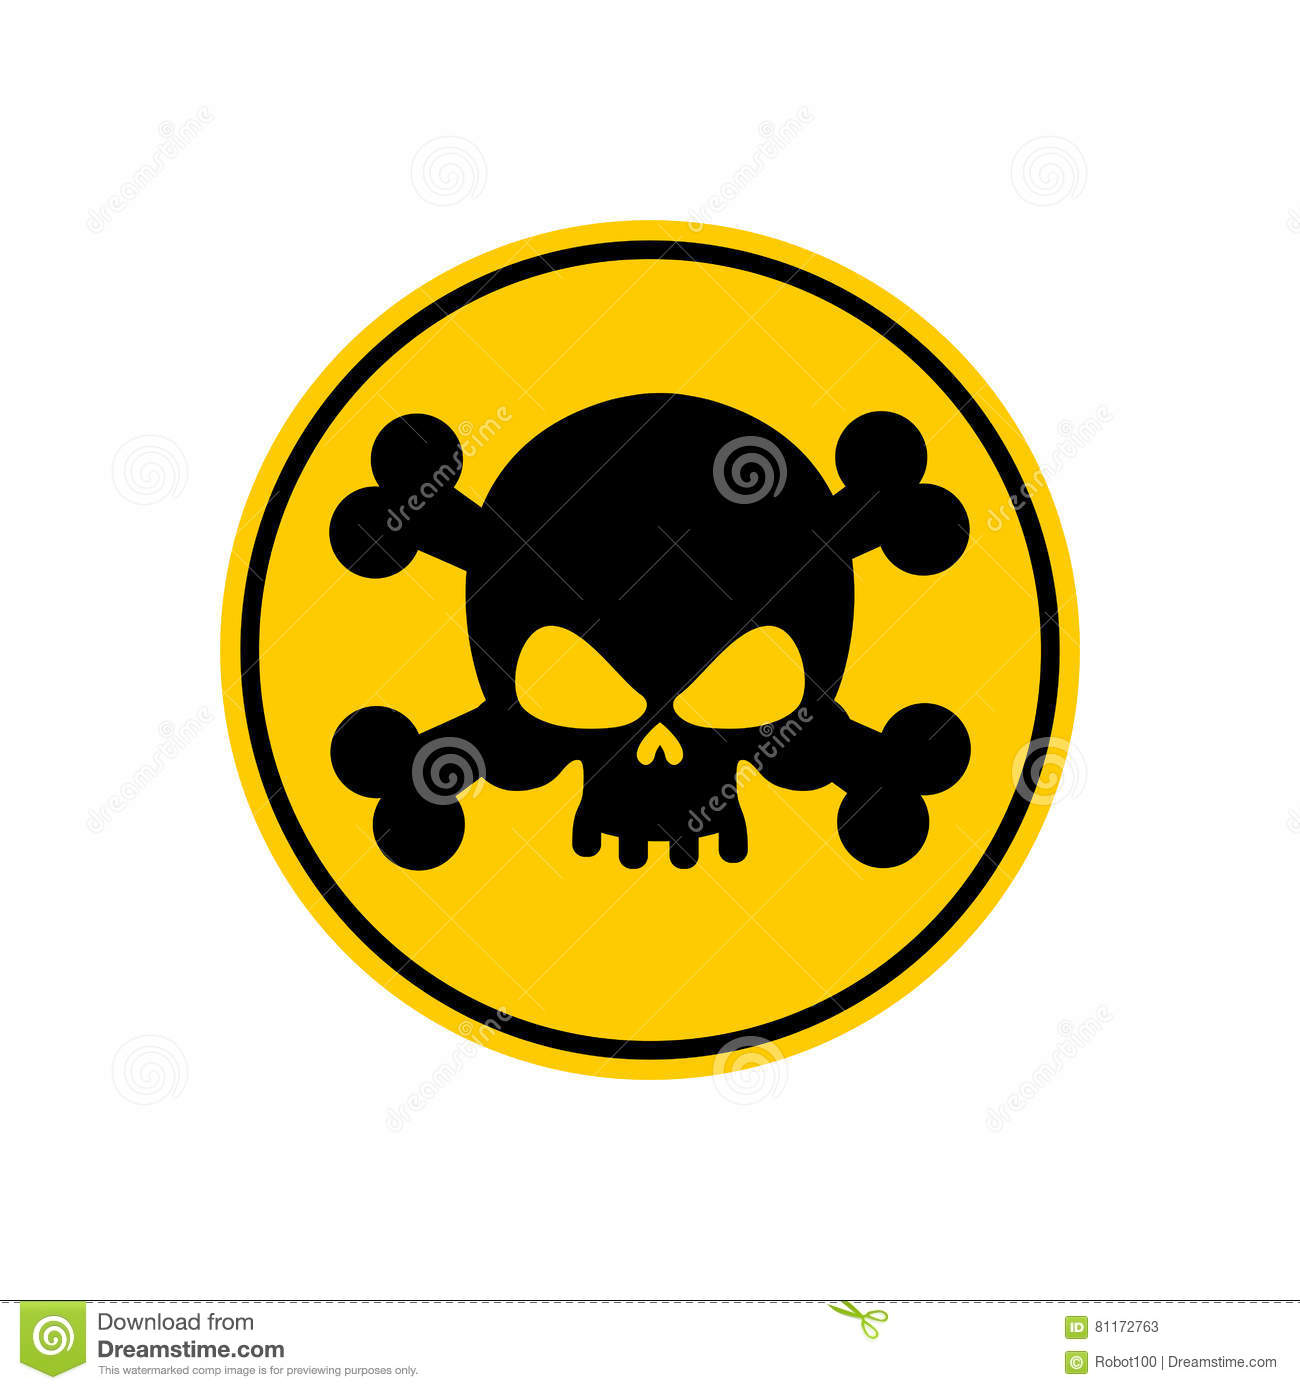 Danger poison sign yellow attention toxic hazard warning sign danger poison sign yellow attention toxic hazard warning sign mortal lighting biocorpaavc Image collections